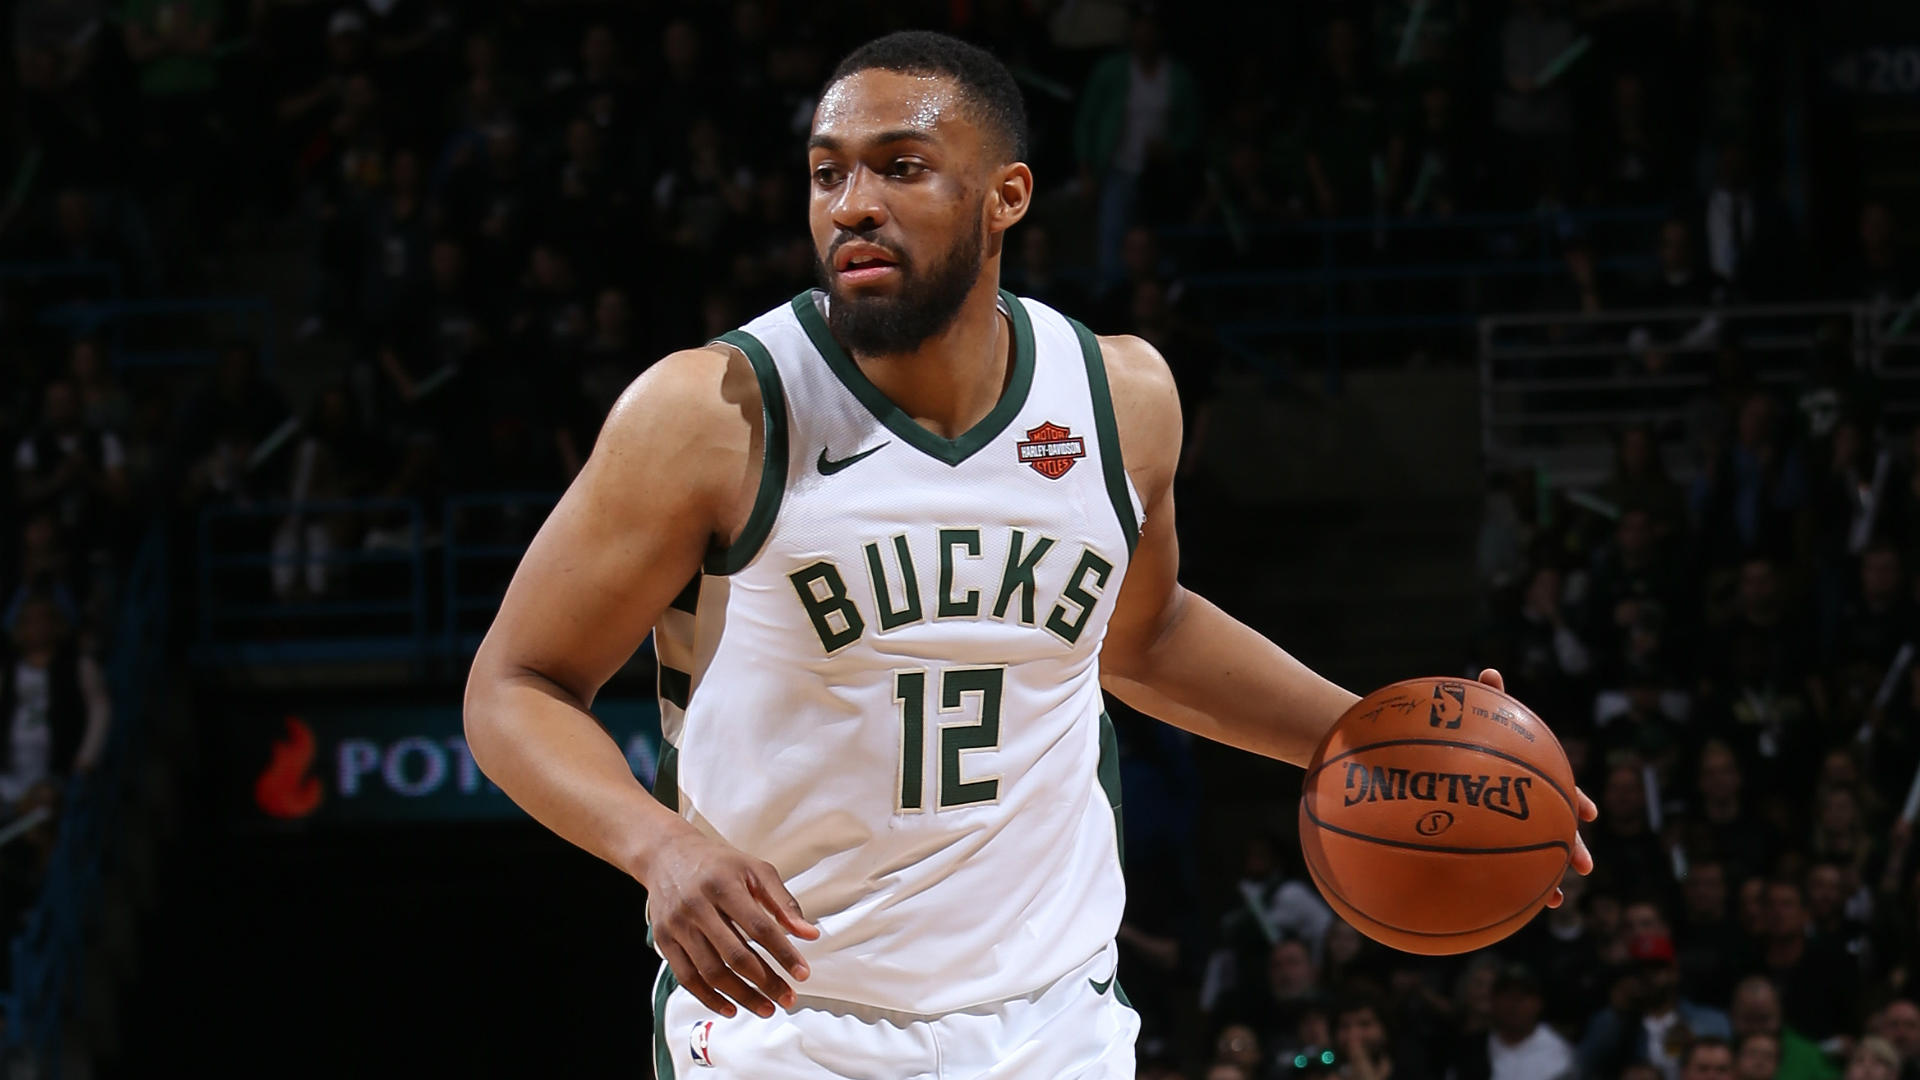 Bucks felt they and Jabari Parker were trending in different directions